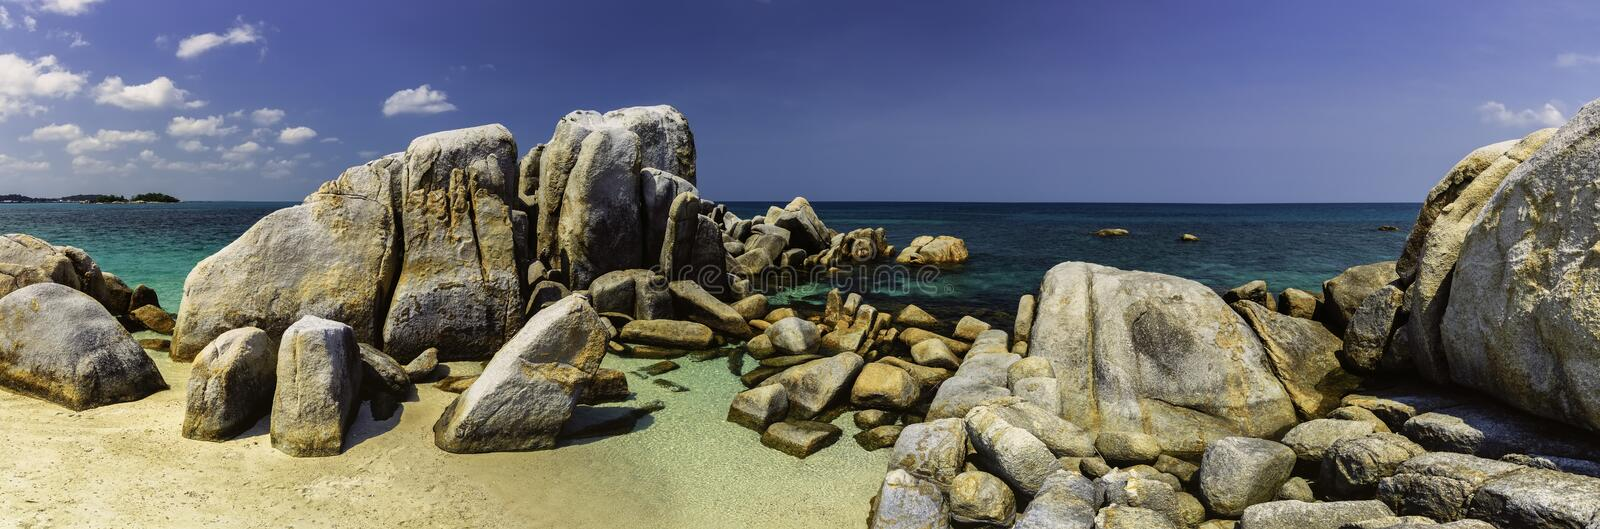 A group of large stones on the sea. Panoramic view of a group of large stones at sea stock image